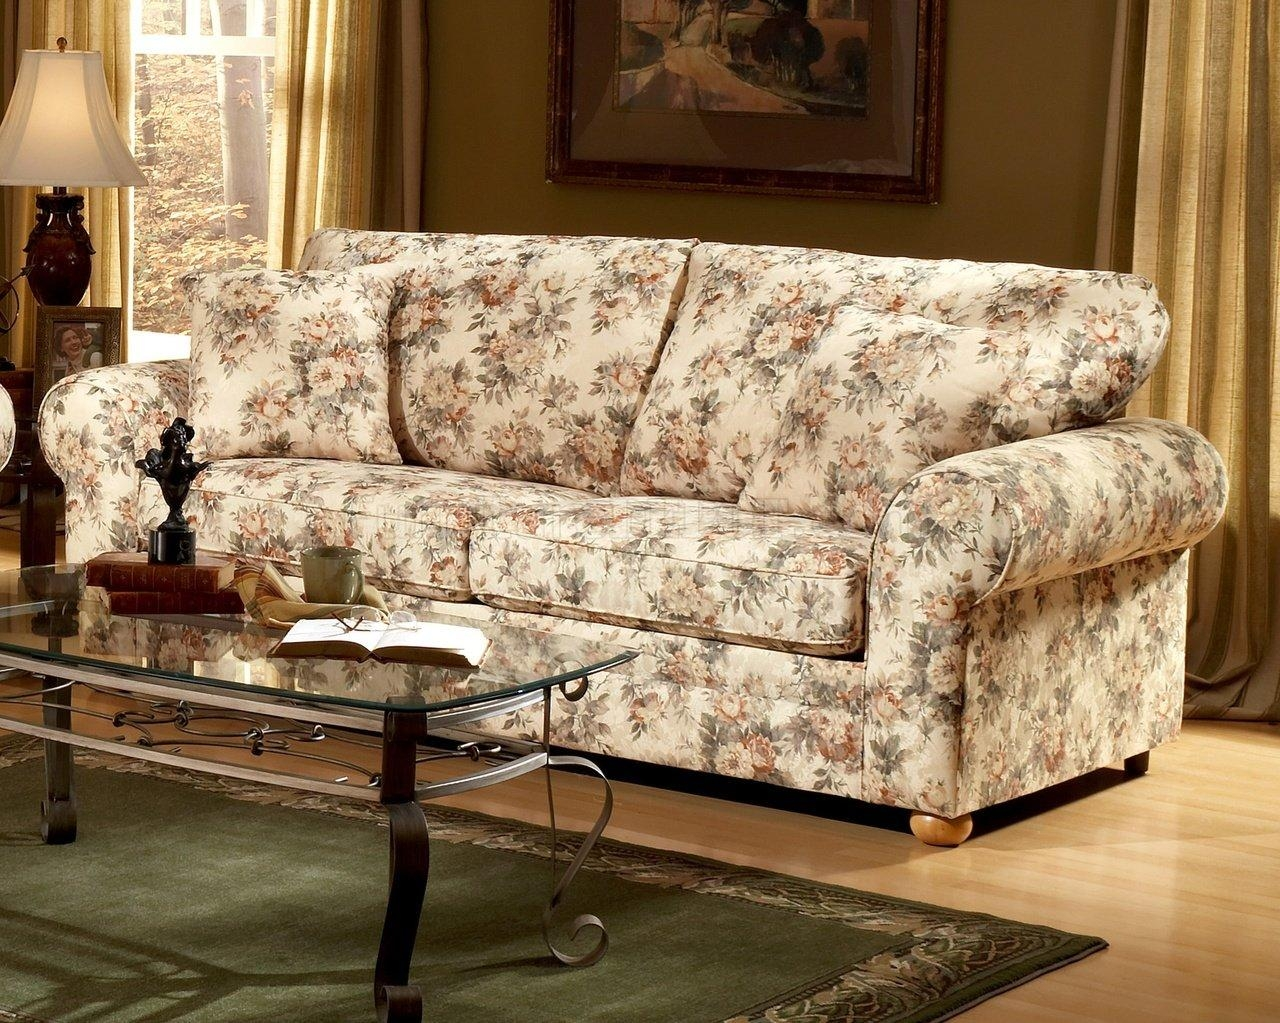 38 Patterned Sofa, Sofa Slips Plus Slipcovered Couches Slip Intended For Chintz Floral Sofas (Image 5 of 22)